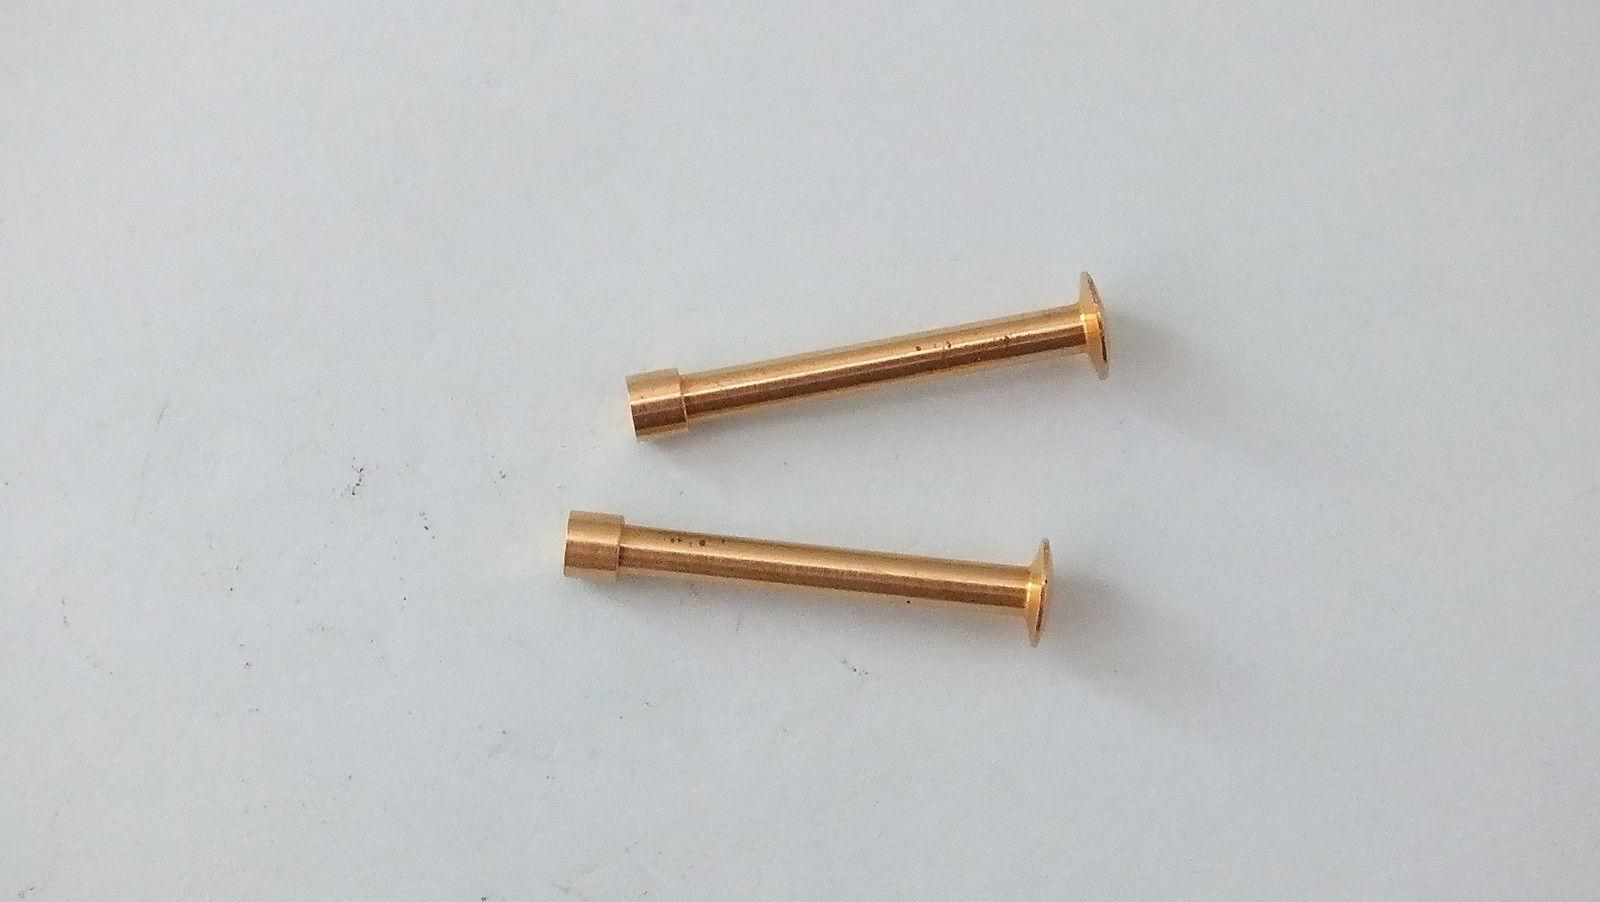 S2234 HORNBY TRIANG X2 REPLACEMENT HYDRAULIC BUFFER HEADS          H11A